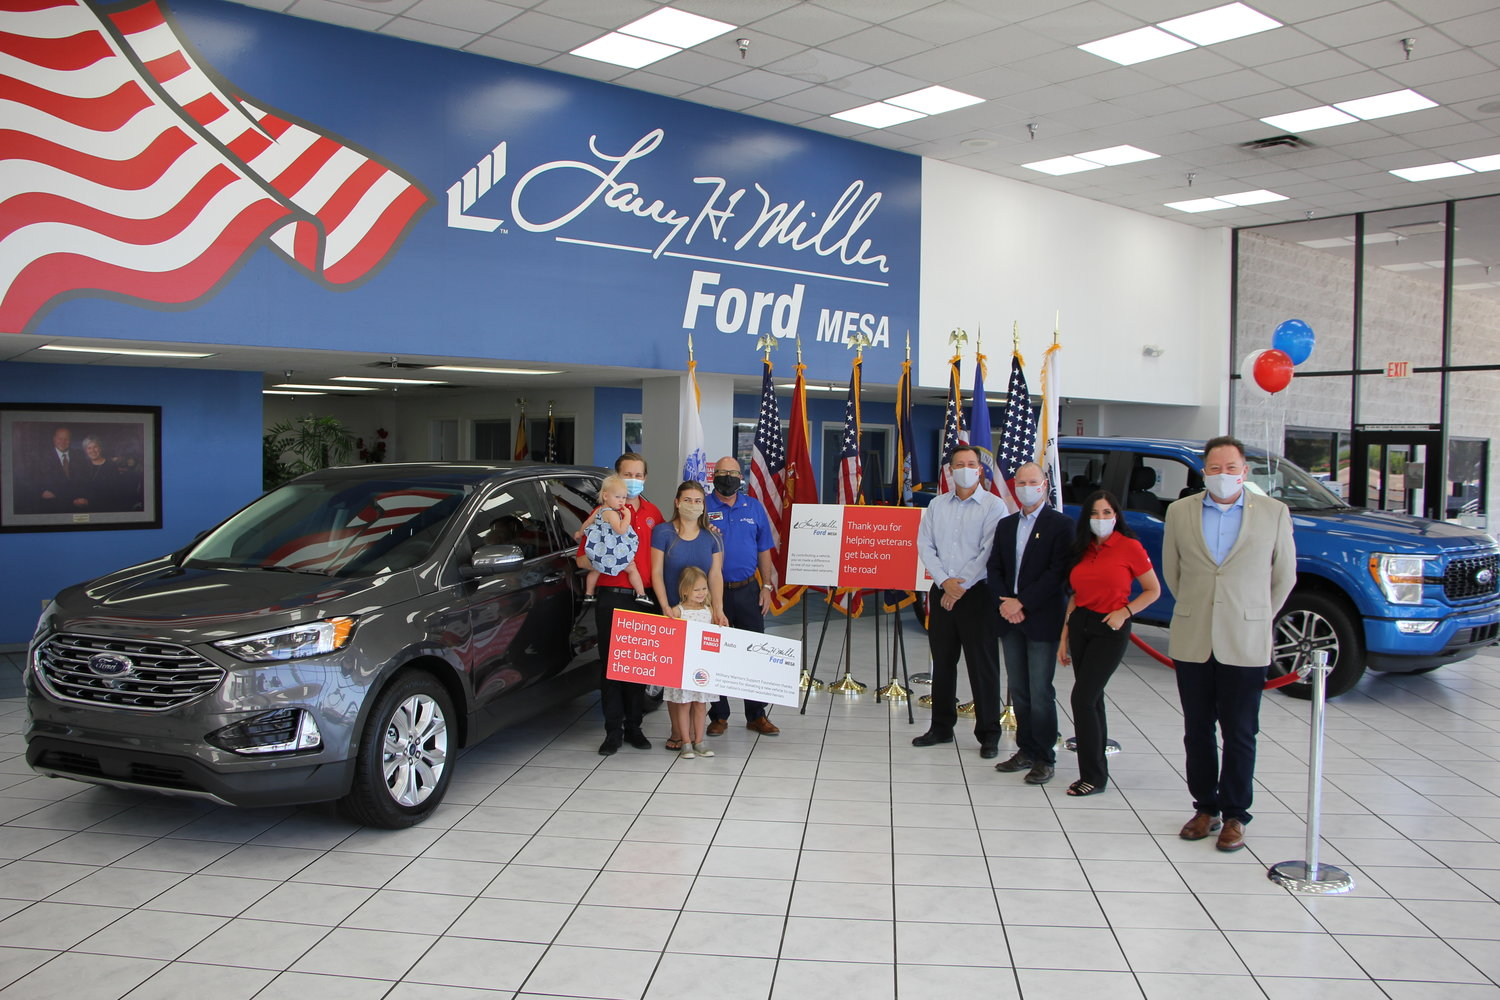 Retired U.S. Army Spc. Phillip Rousu and his family participated in a key ceremony at Larry H. Miller Ford Mesa, 460 E. Auto Center Drive, where he was recognized for his service and given the keys to his vehicle.